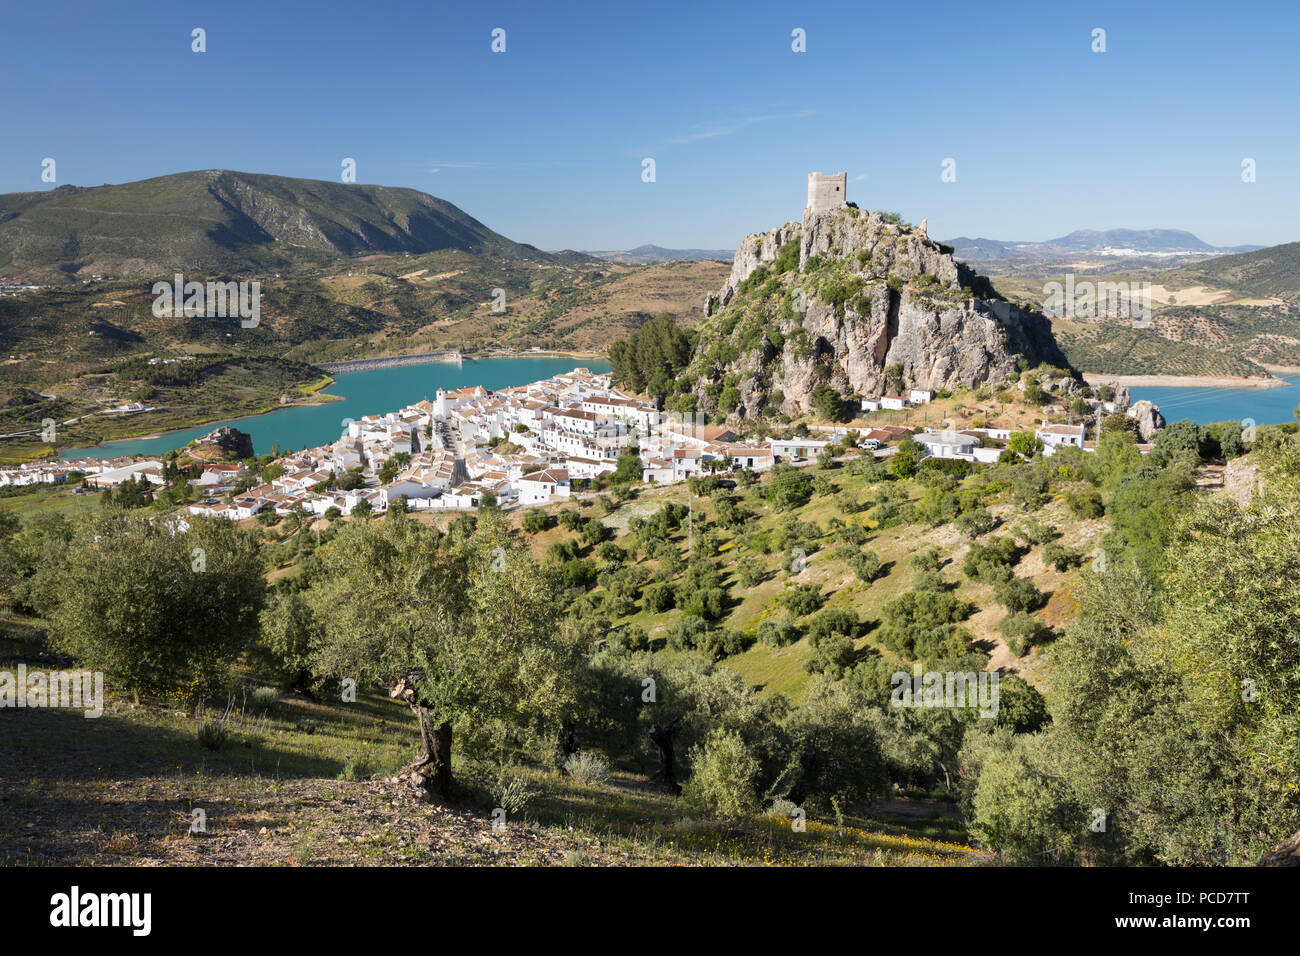 Moorish castle above white village with olive groves, Zahara de la Sierra, Sierra de Grazalema Natural Park, Andalucia, Spain, Europe - Stock Image